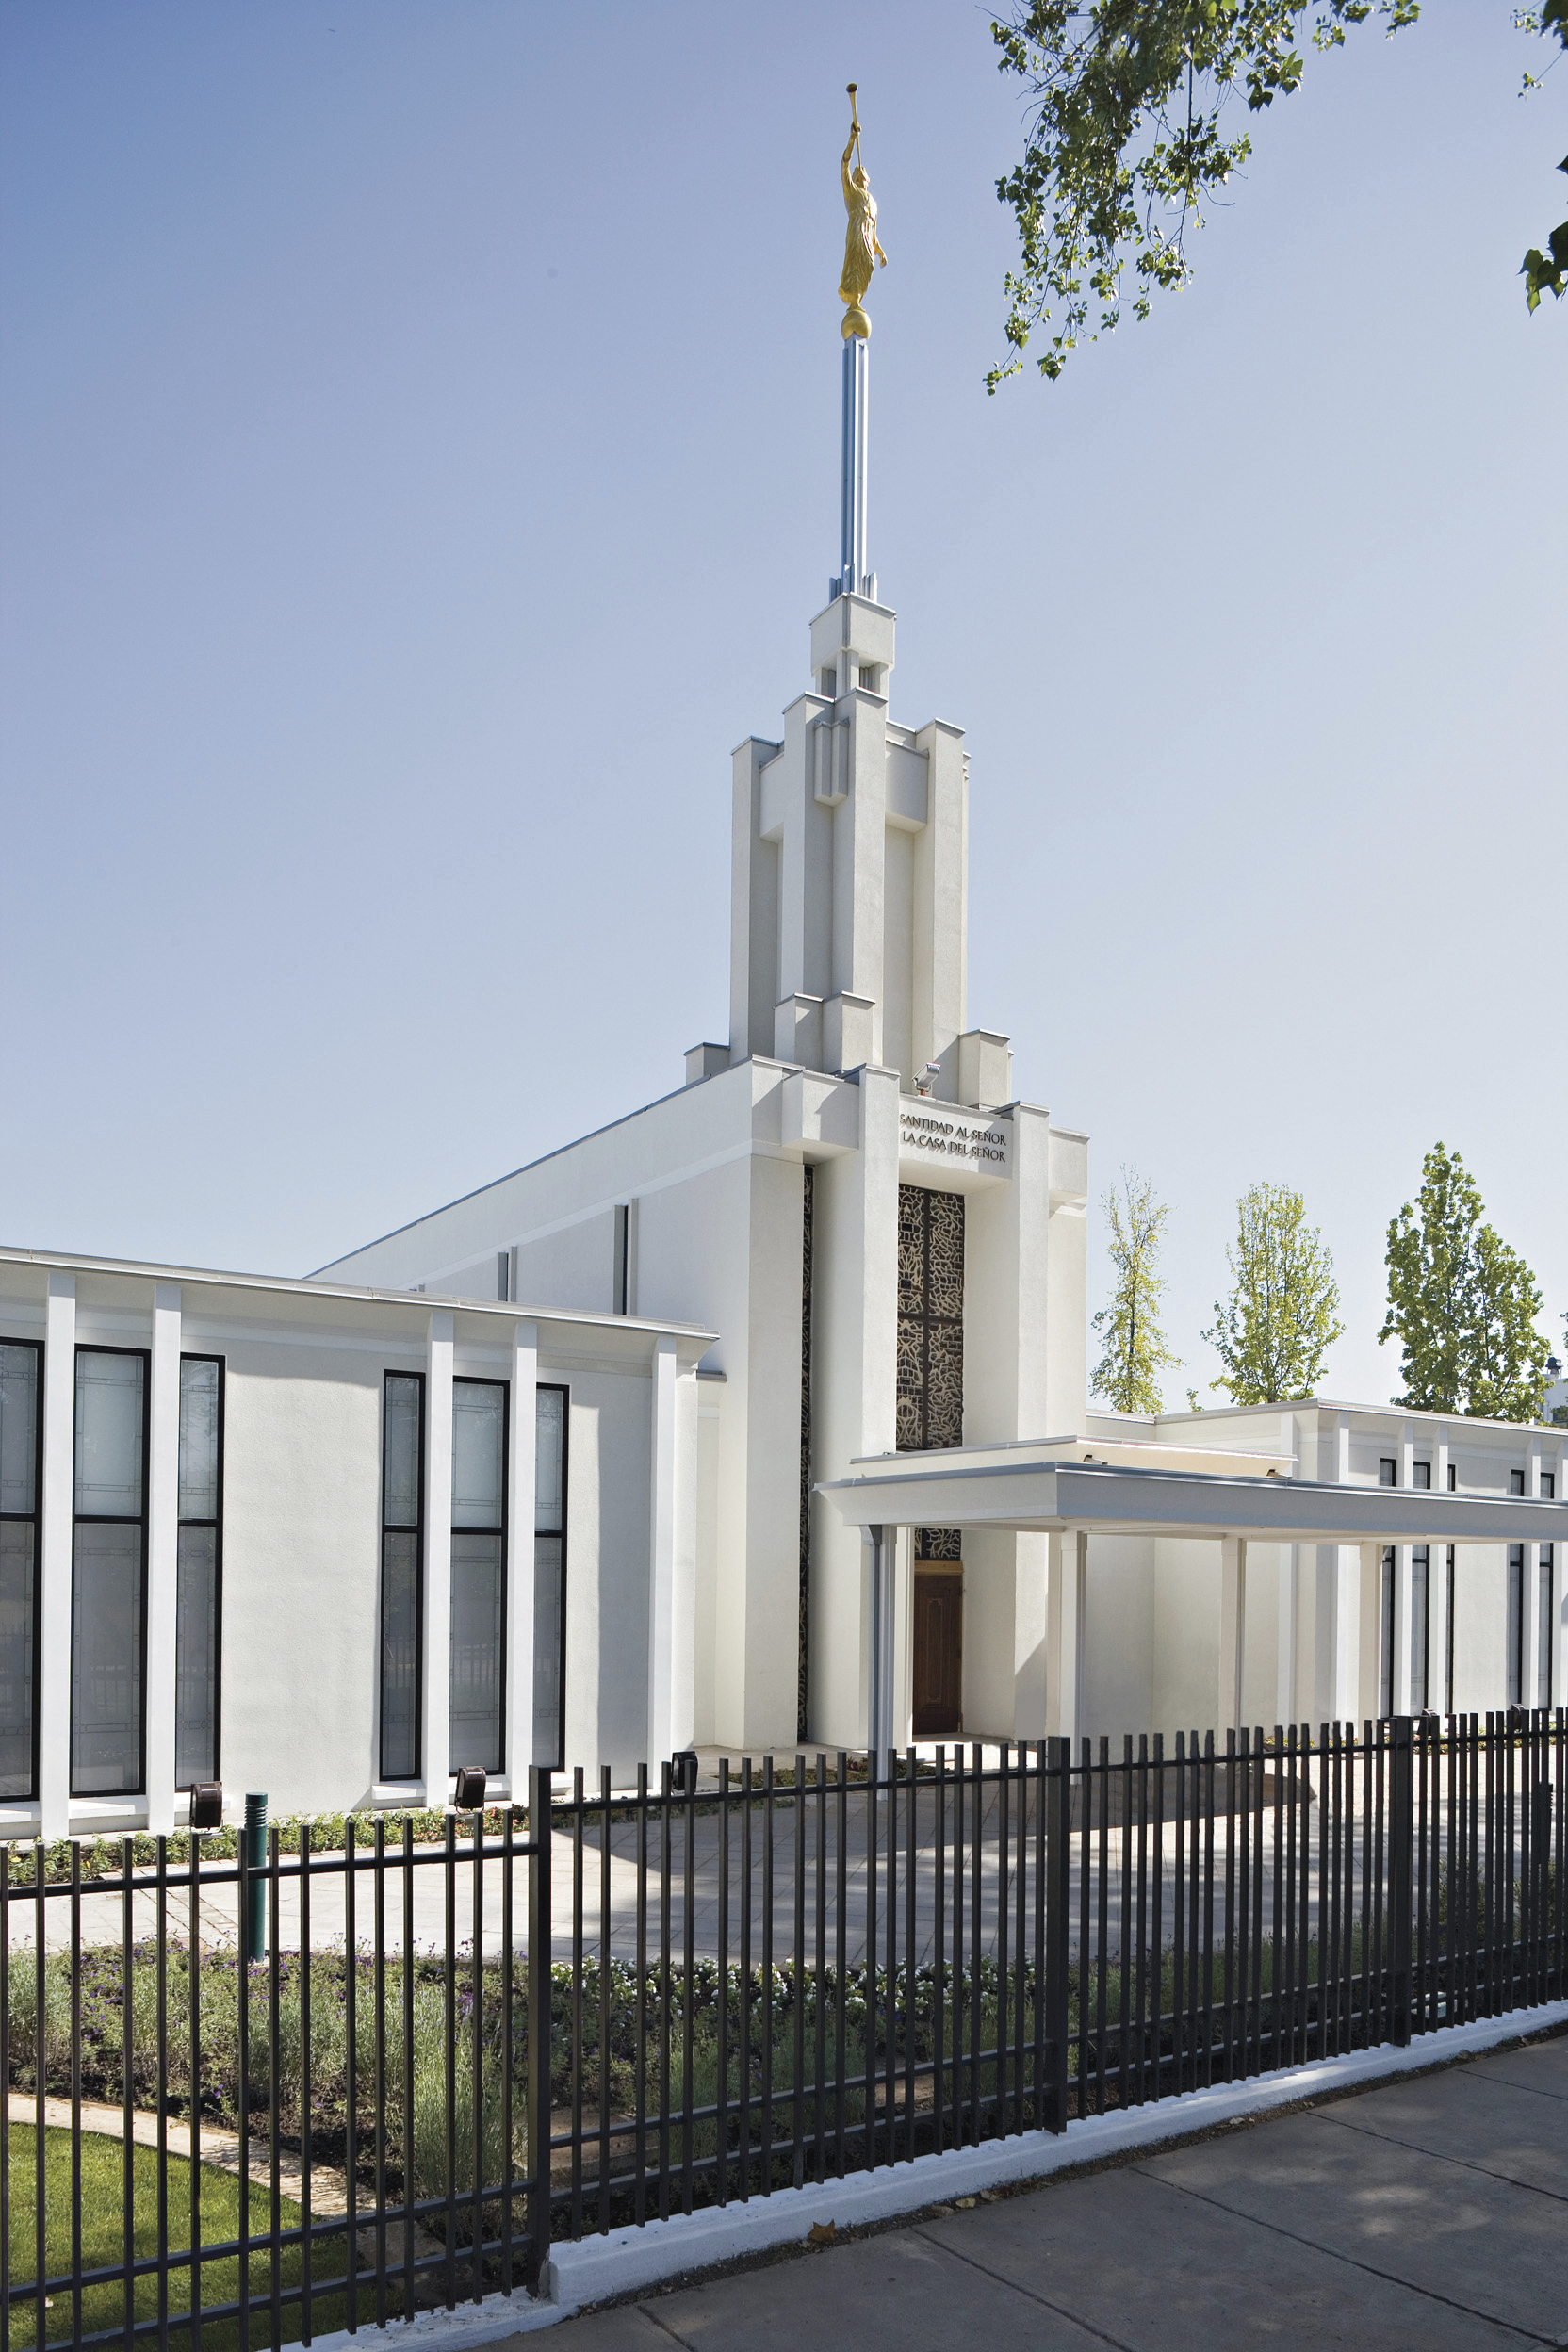 The Santiago Chile Temple, including the entrance and spire.